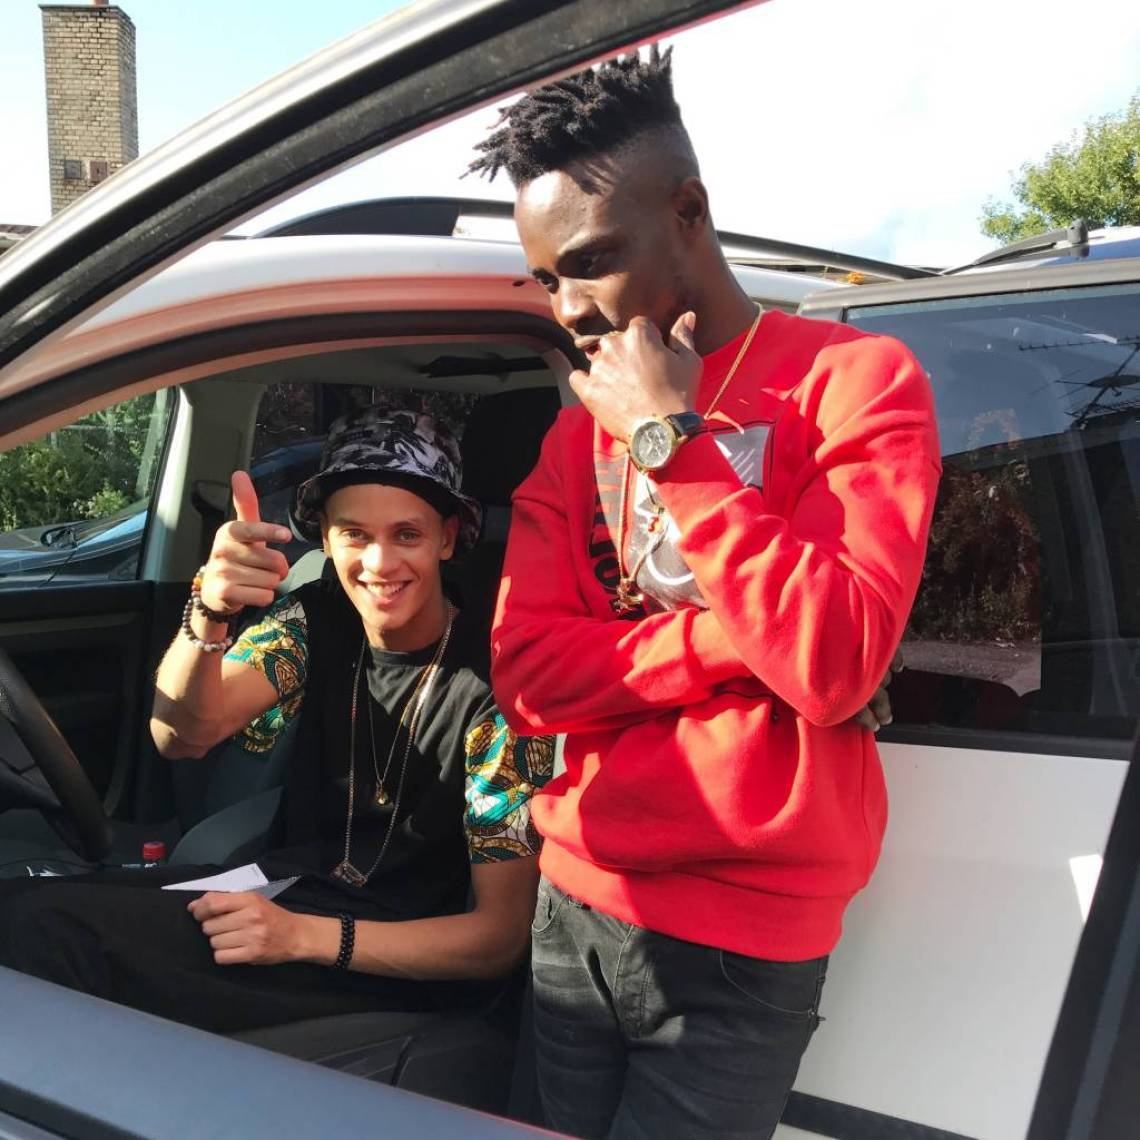 DXD set to release Move 2 D Vibe music video featuring Kaka (1)